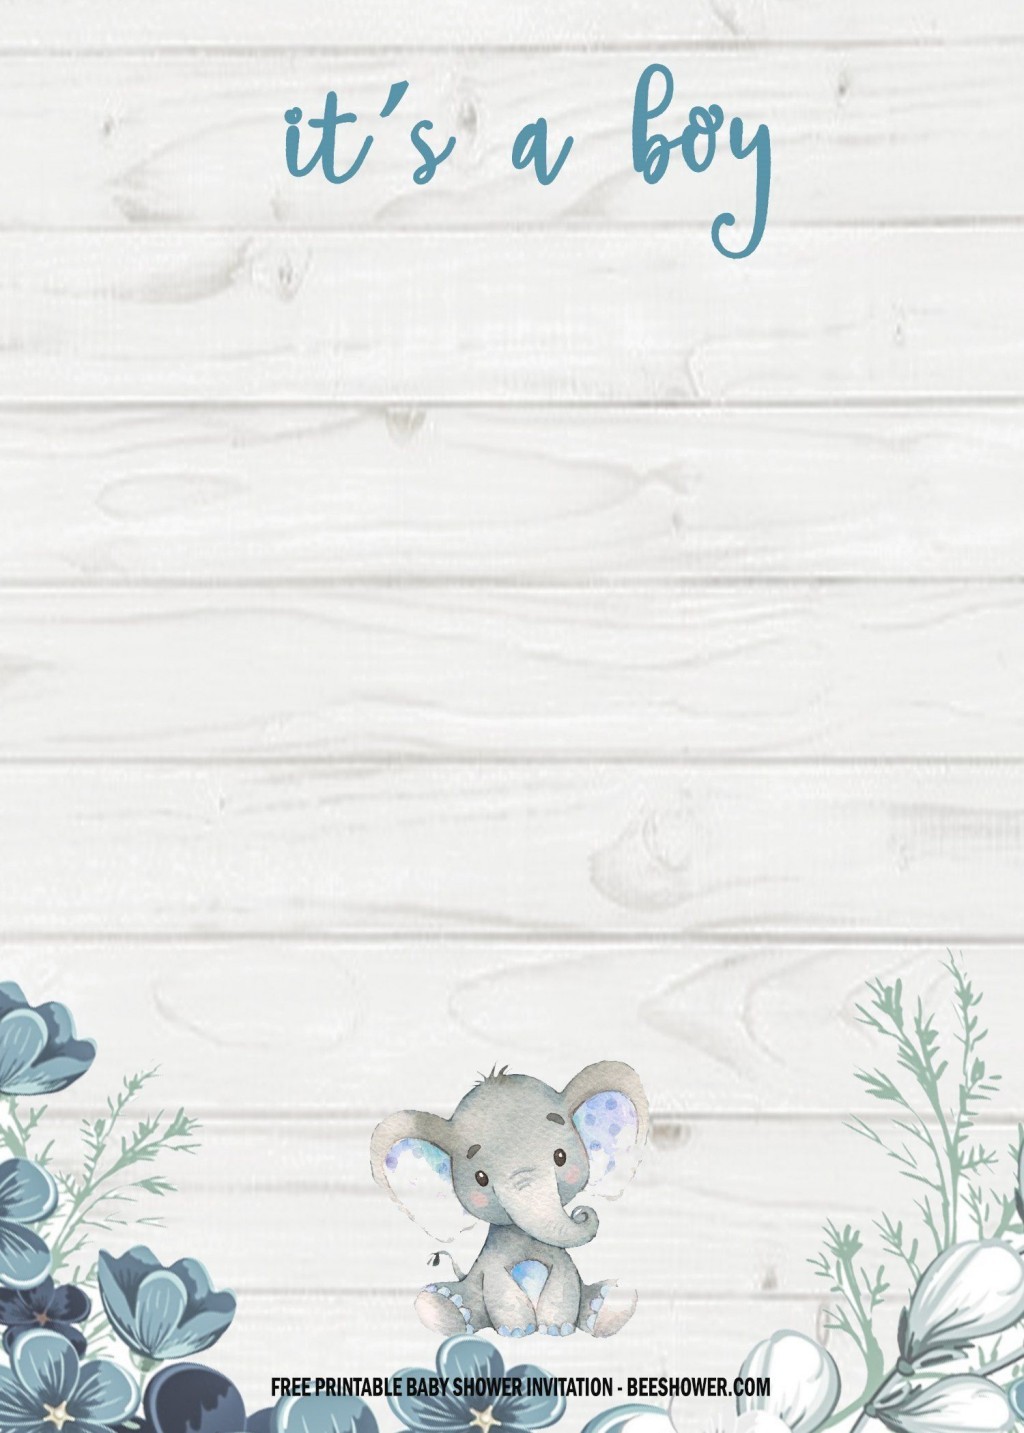 000 Unique Baby Shower Card Design Free Photo  Template Microsoft Word Boy DownloadLarge